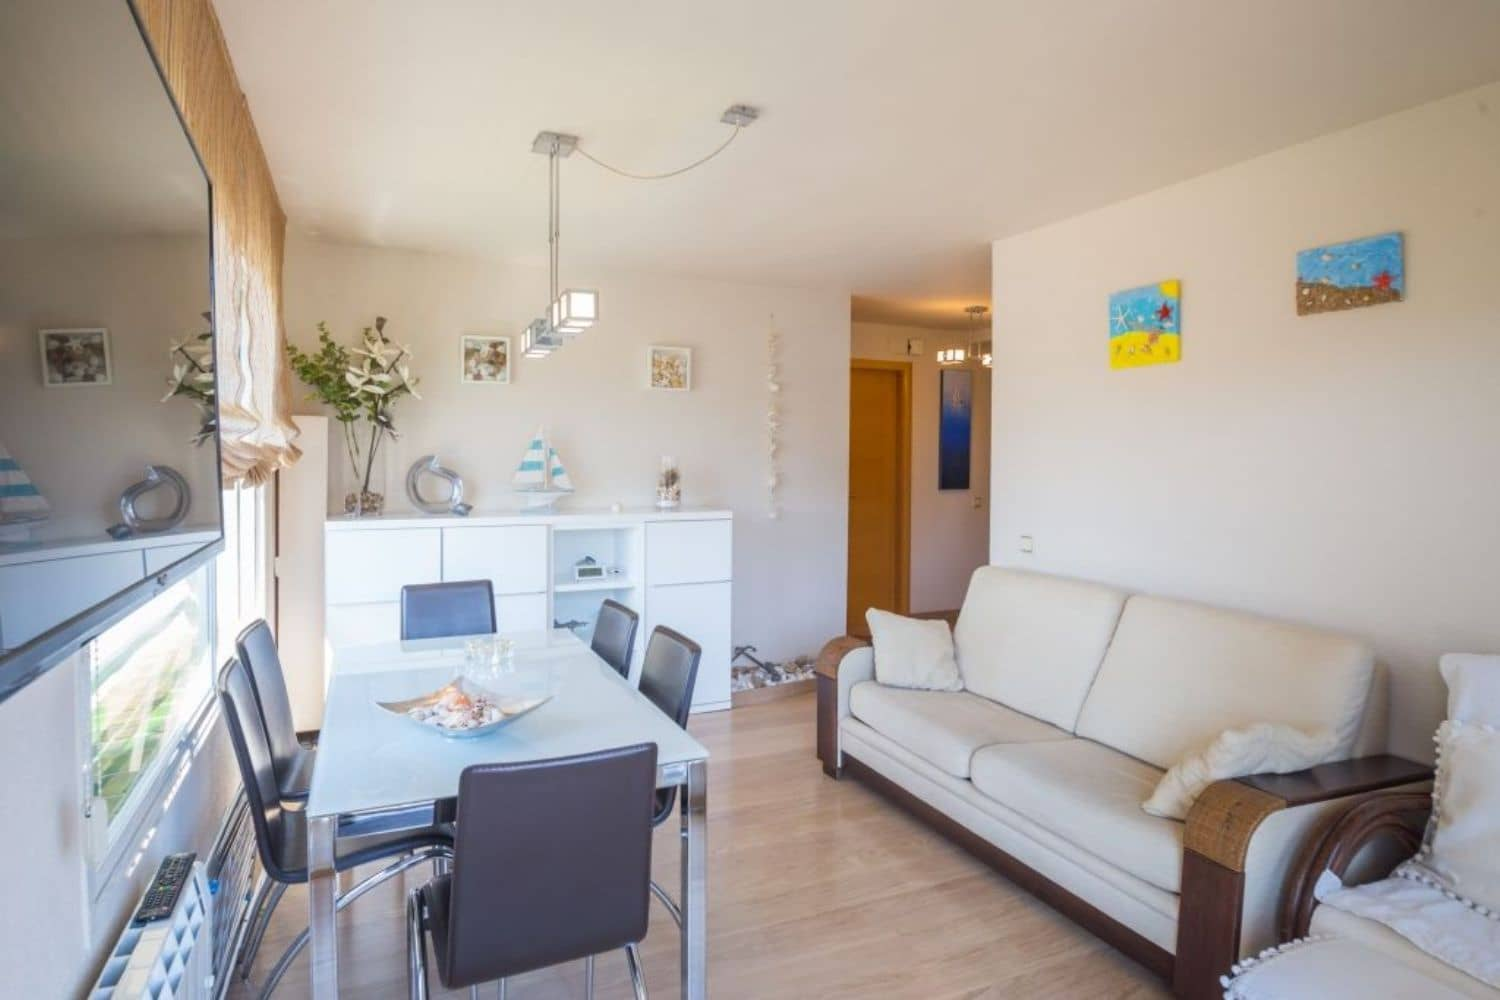 2 bedroom Apartment for sale in Platja d'Aro with pool - € 215,000 (Ref: 5503489)